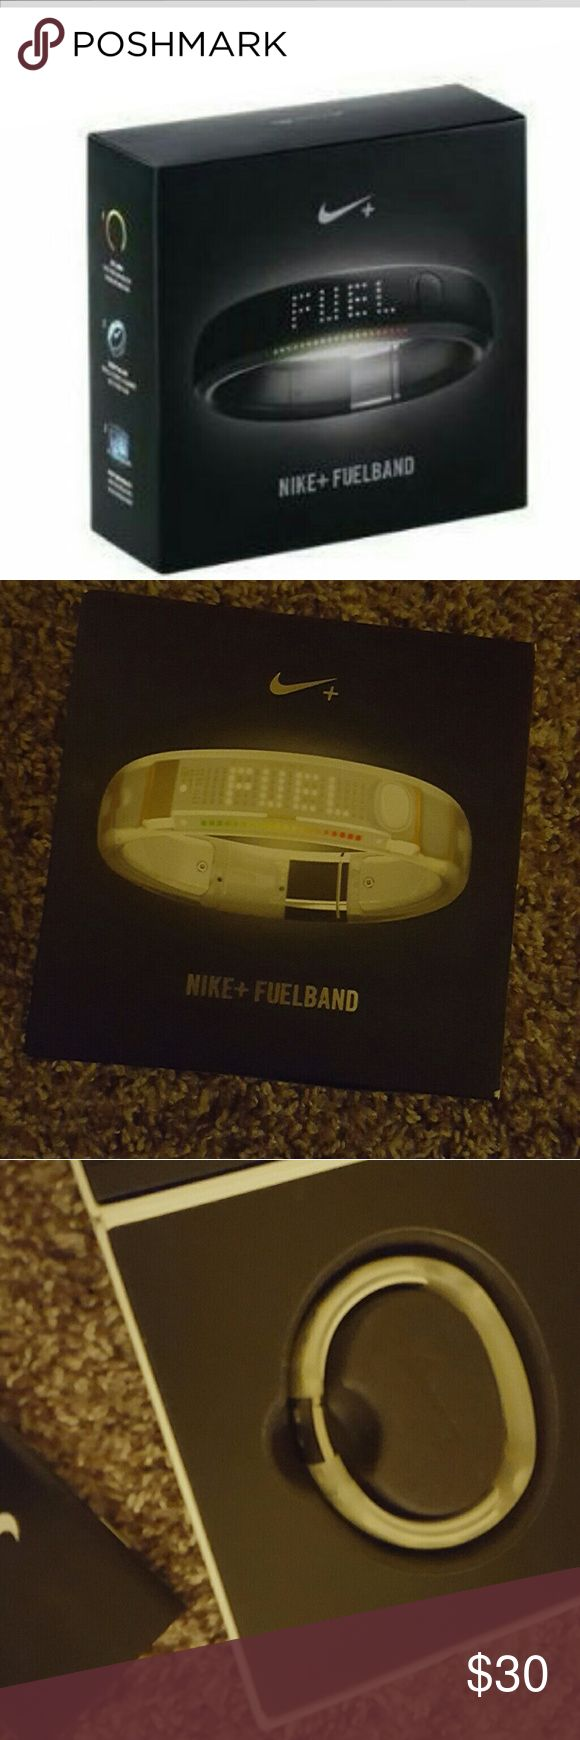 Nike Fuel Band Unisex Nike Fuel Band Size M- this is for the white version. All these included in original packaging except USB cord....it's a standard USB charger, I am probably using it to charge something else now haha ??. You can use another one you likely have lying around or run out and get one for a few bucks. Nike Accessories Watches